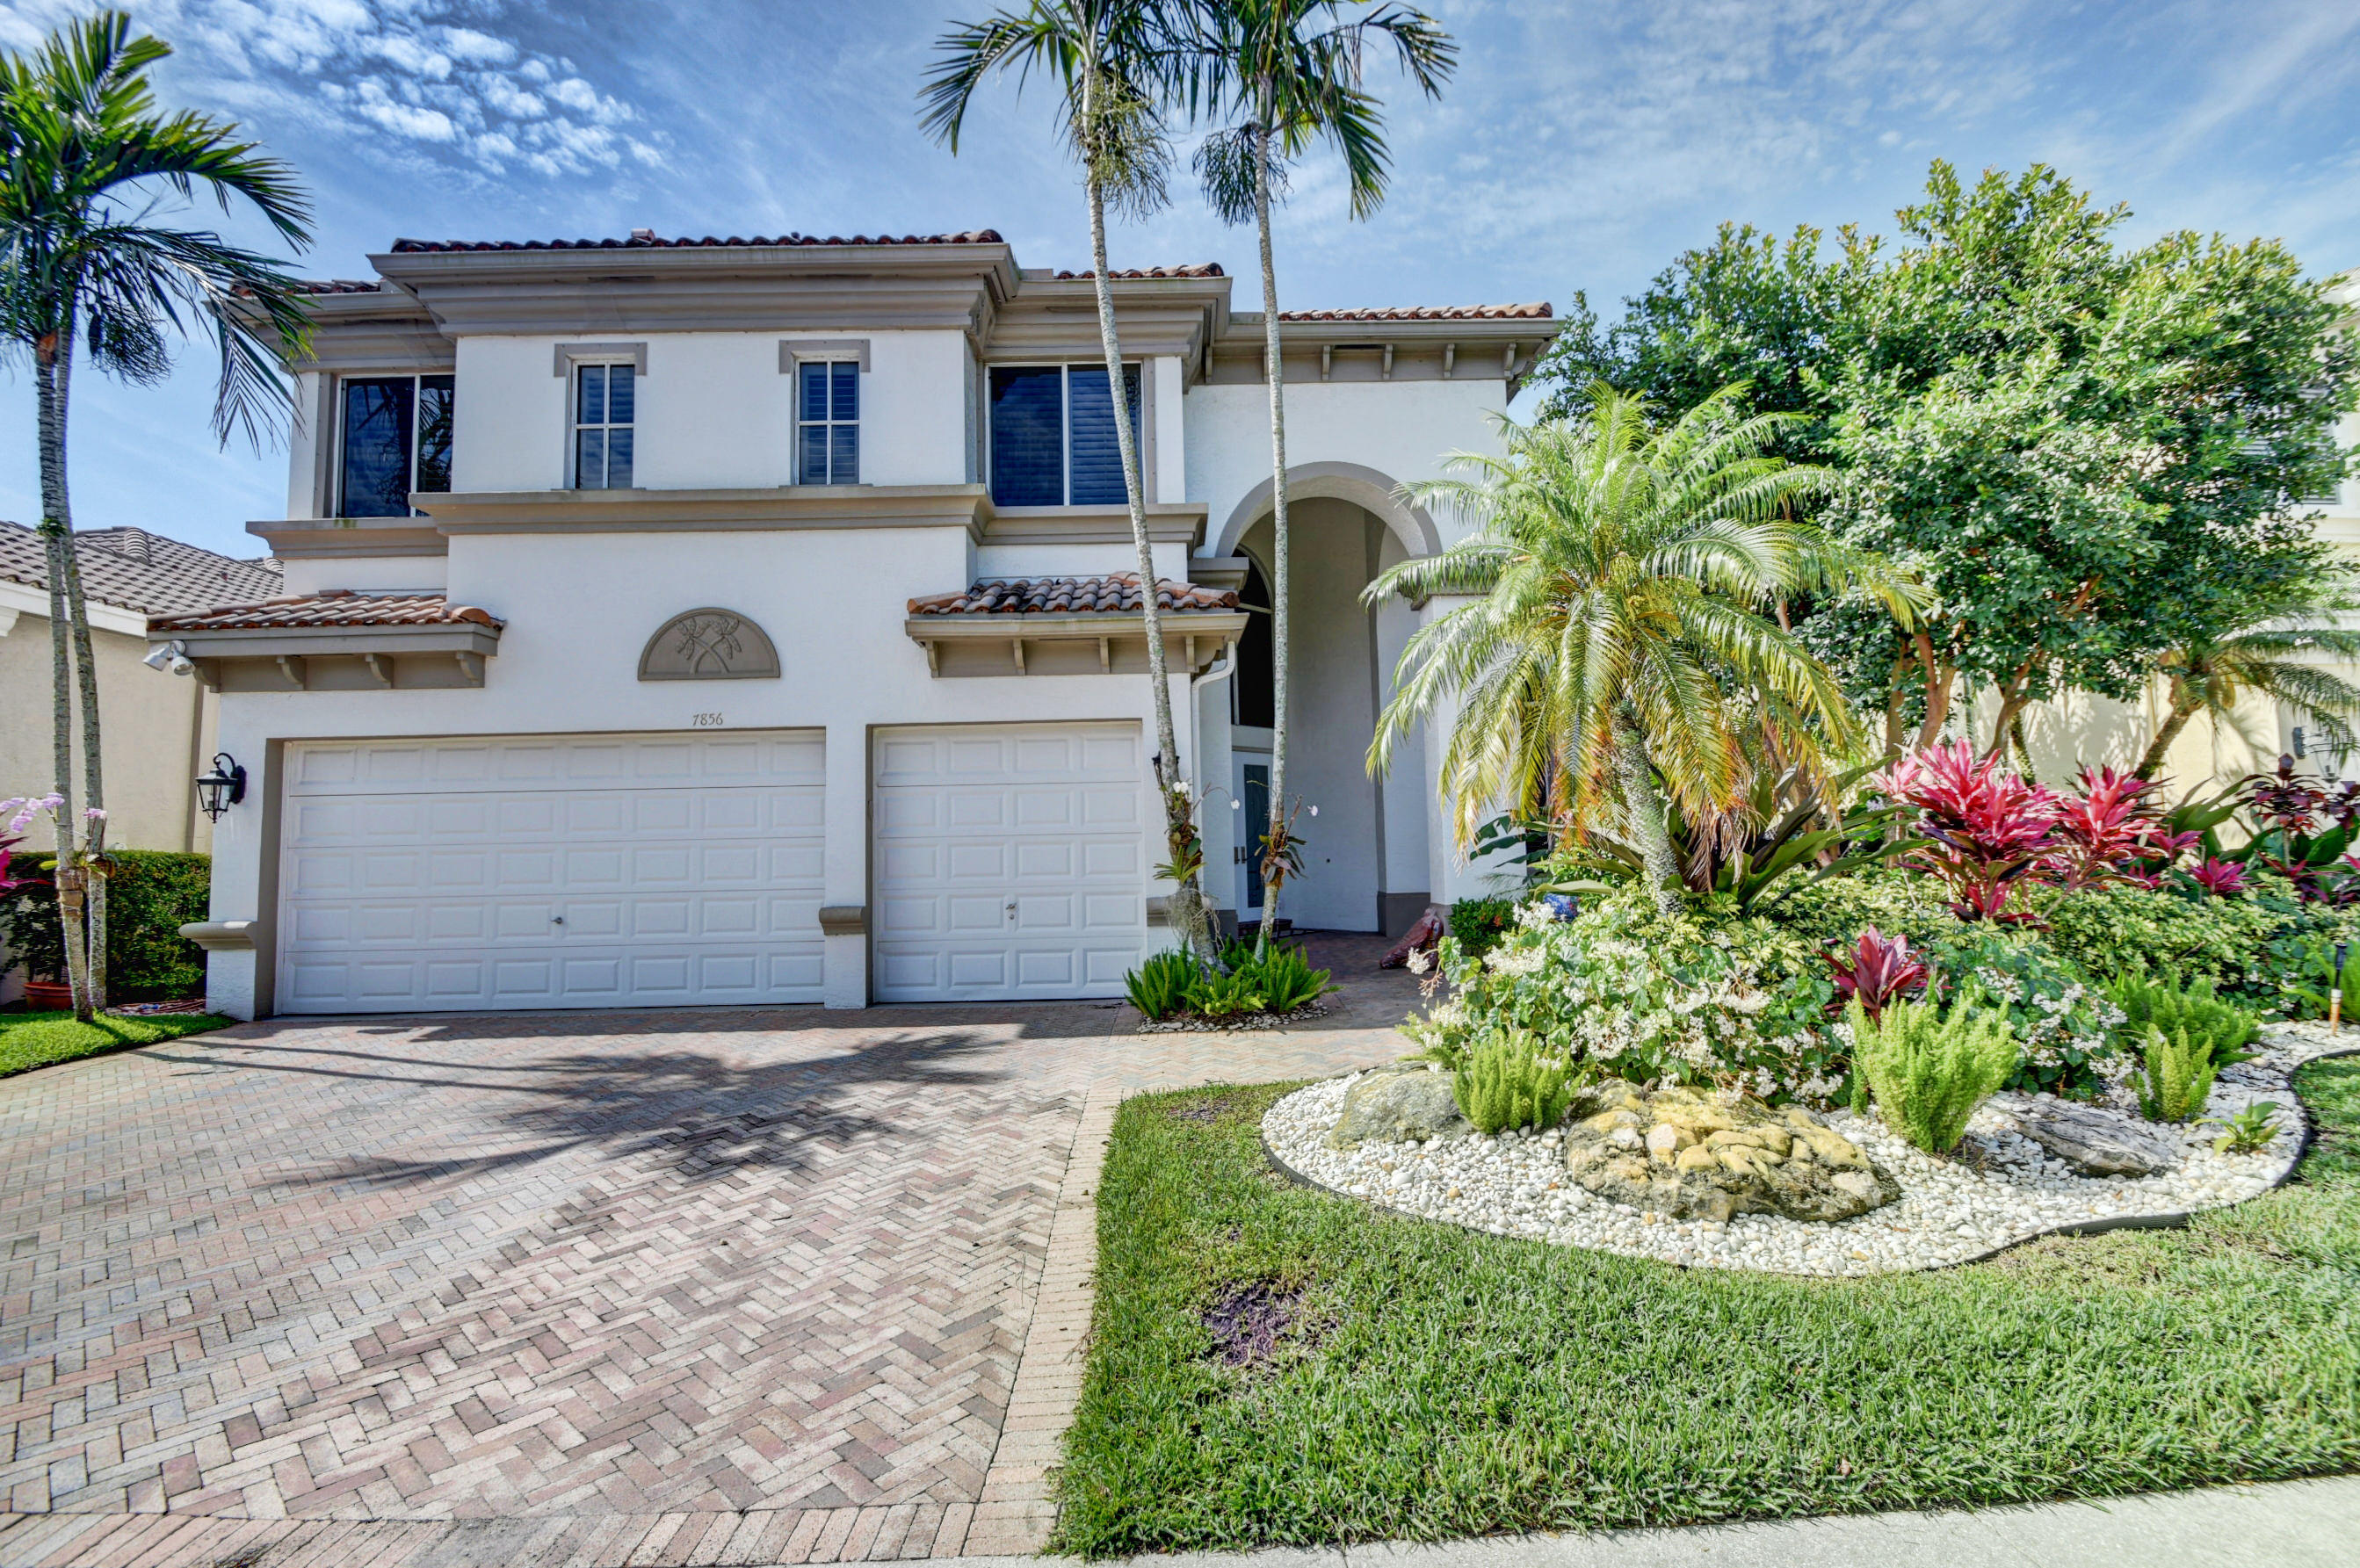 7856 L Aquila Way, Delray Beach, Florida 33446, 3 Bedrooms Bedrooms, ,4 BathroomsBathrooms,Single Family,For Sale,Addison Reserve CC,L Aquila,RX-10534982